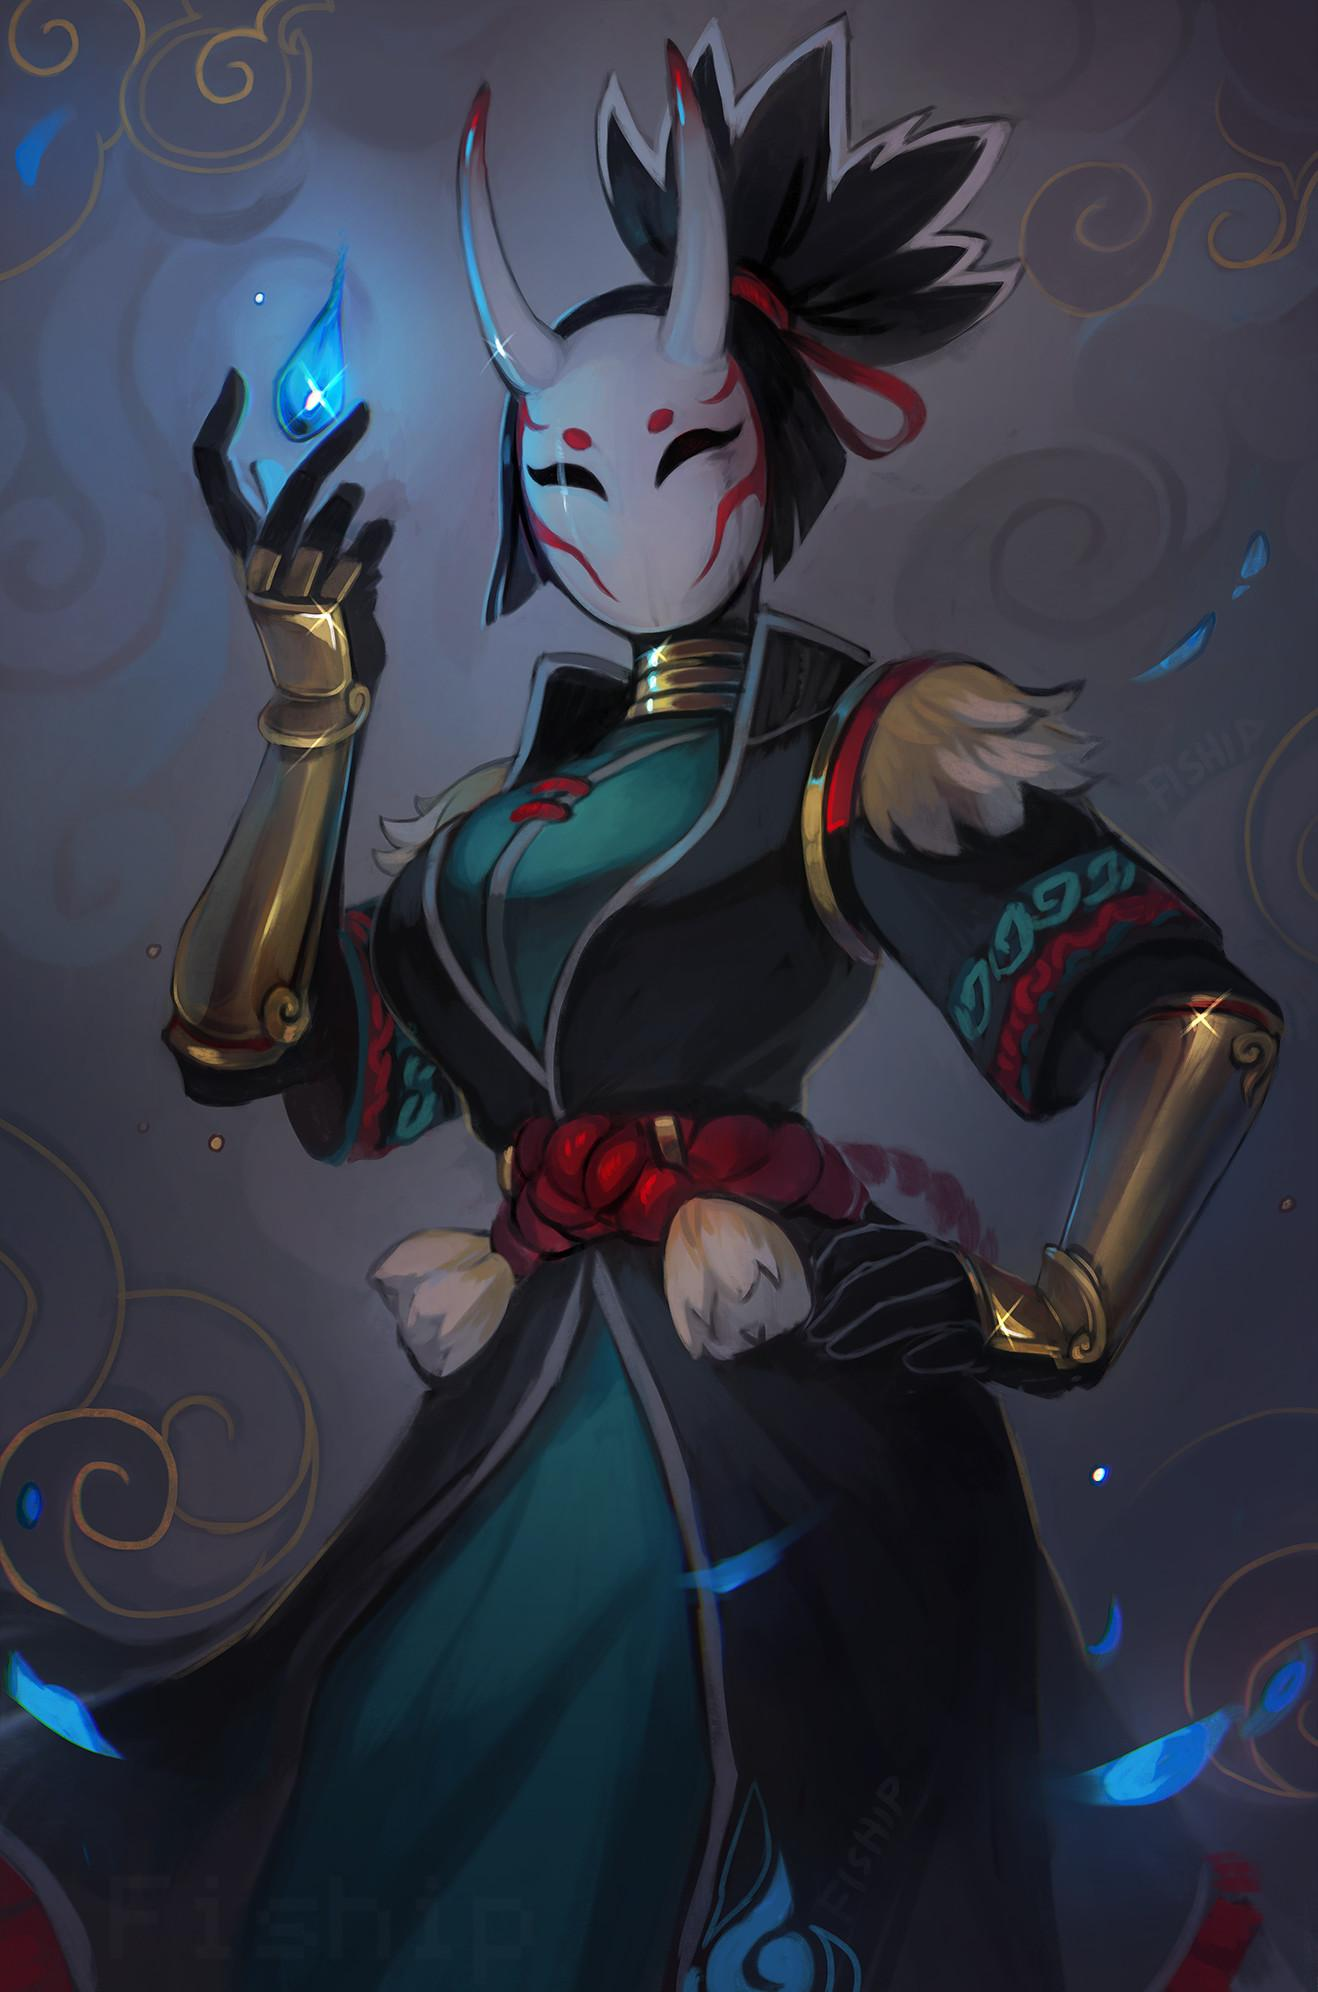 Wallpaper Nara Skin Fortnite Battle Royale - Art by Matilda Fiship ...